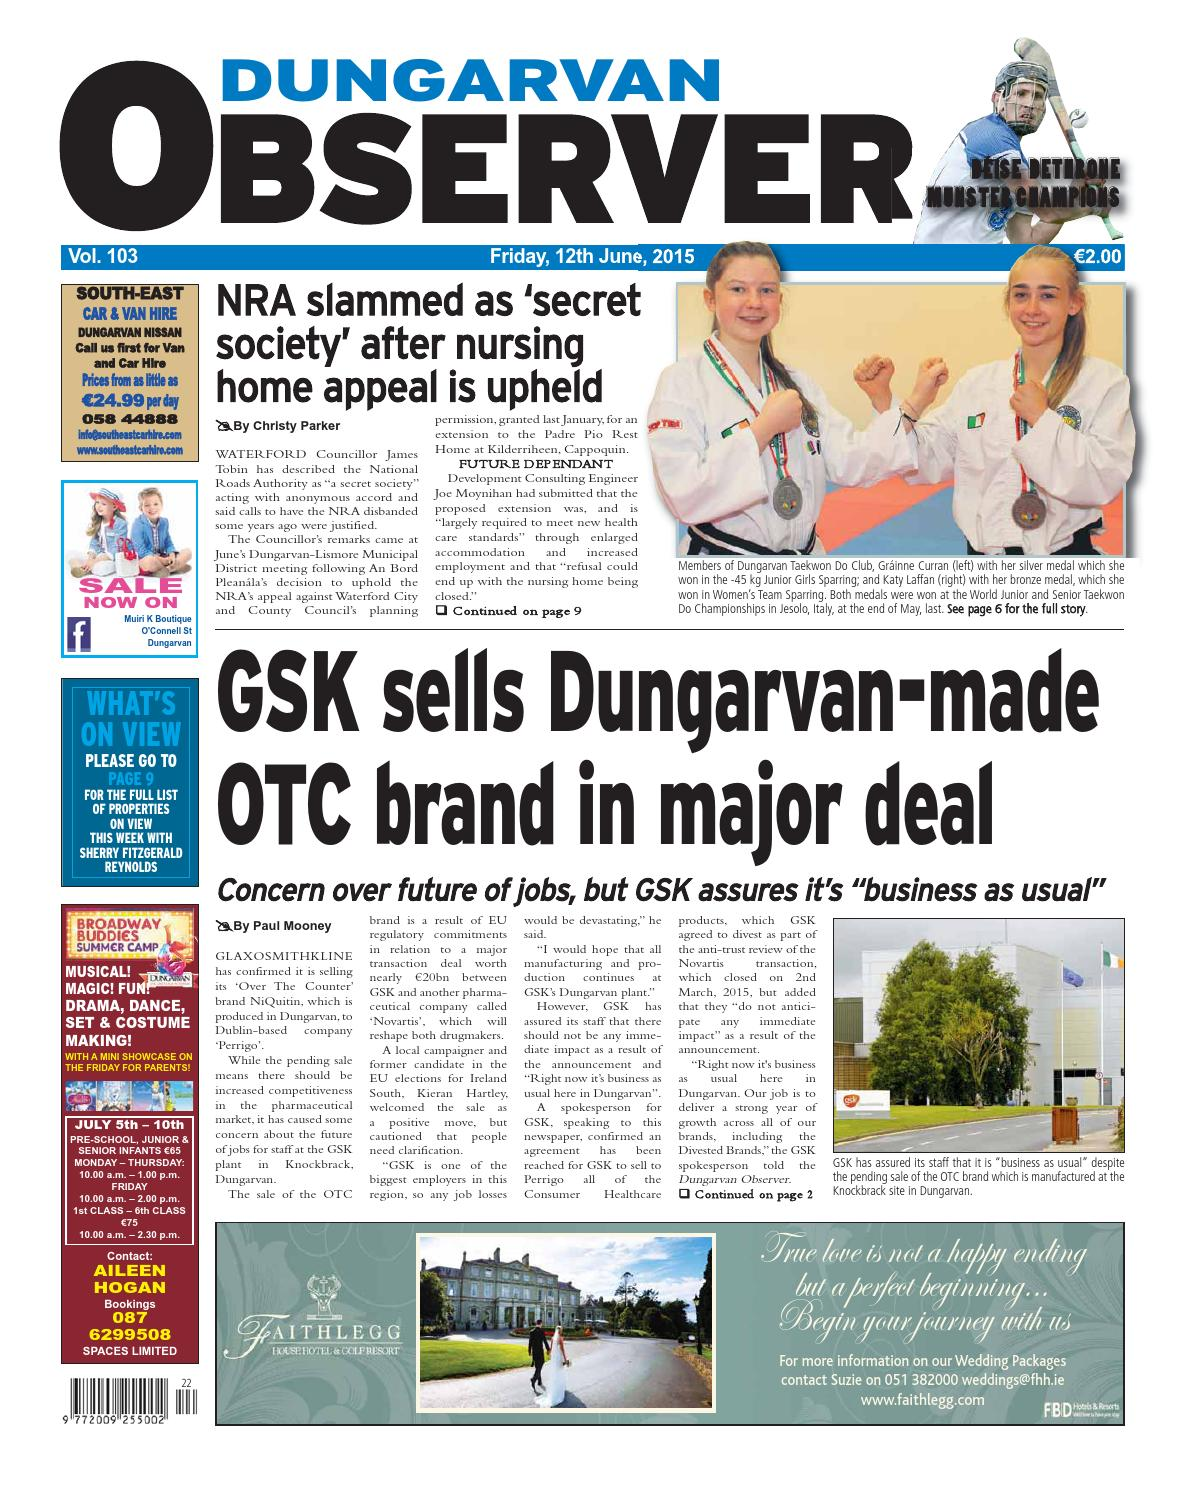 f13b371e49 Dungarvan observer 12 6 2015 edition by Dungarvan Observer - issuu